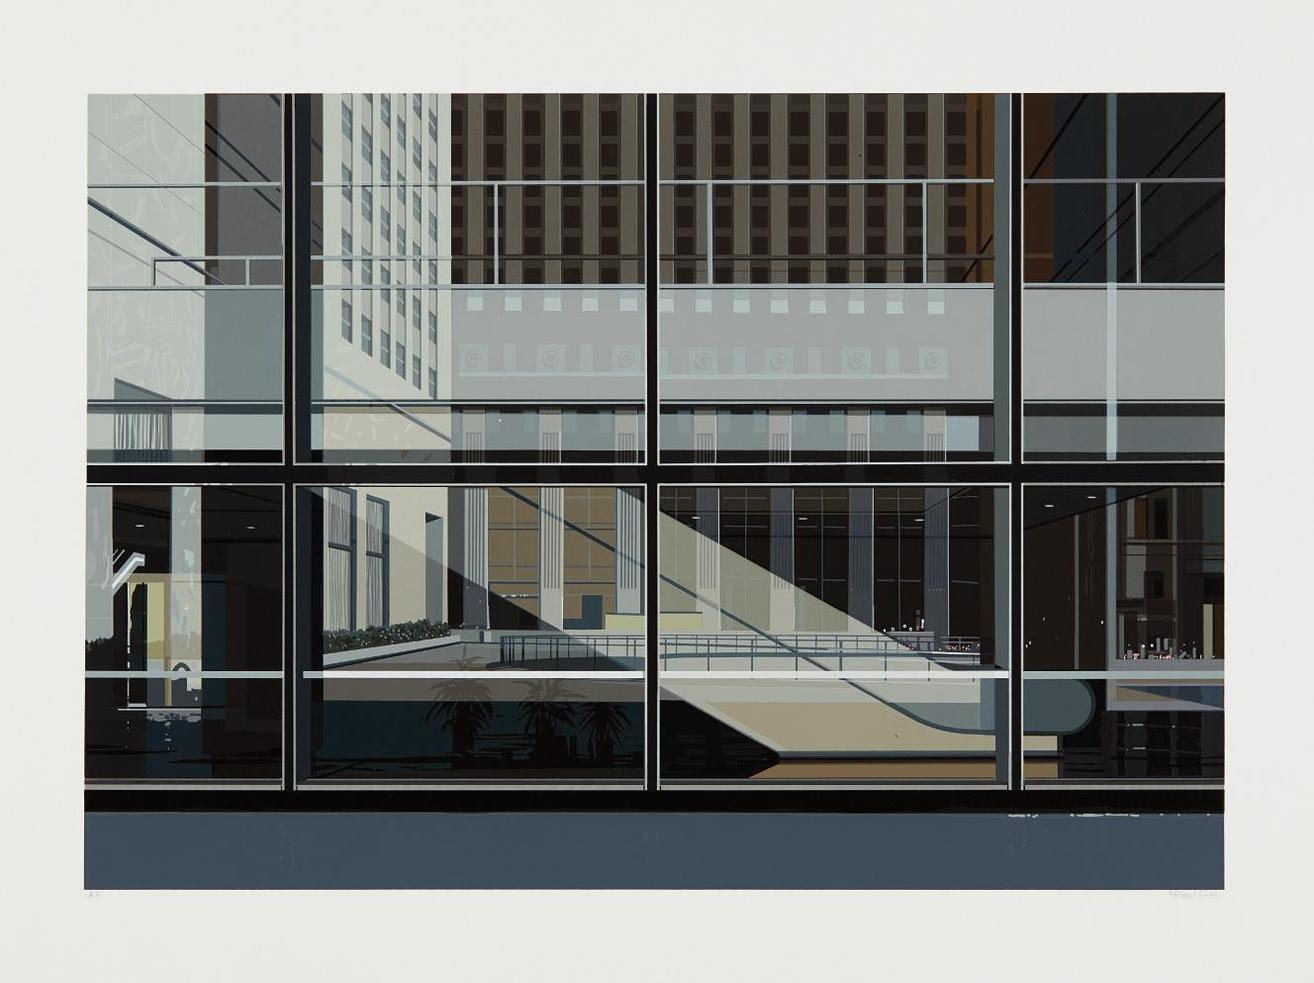 Richard Estes-Manhattan, From Urban Landscapes No. 3-1981